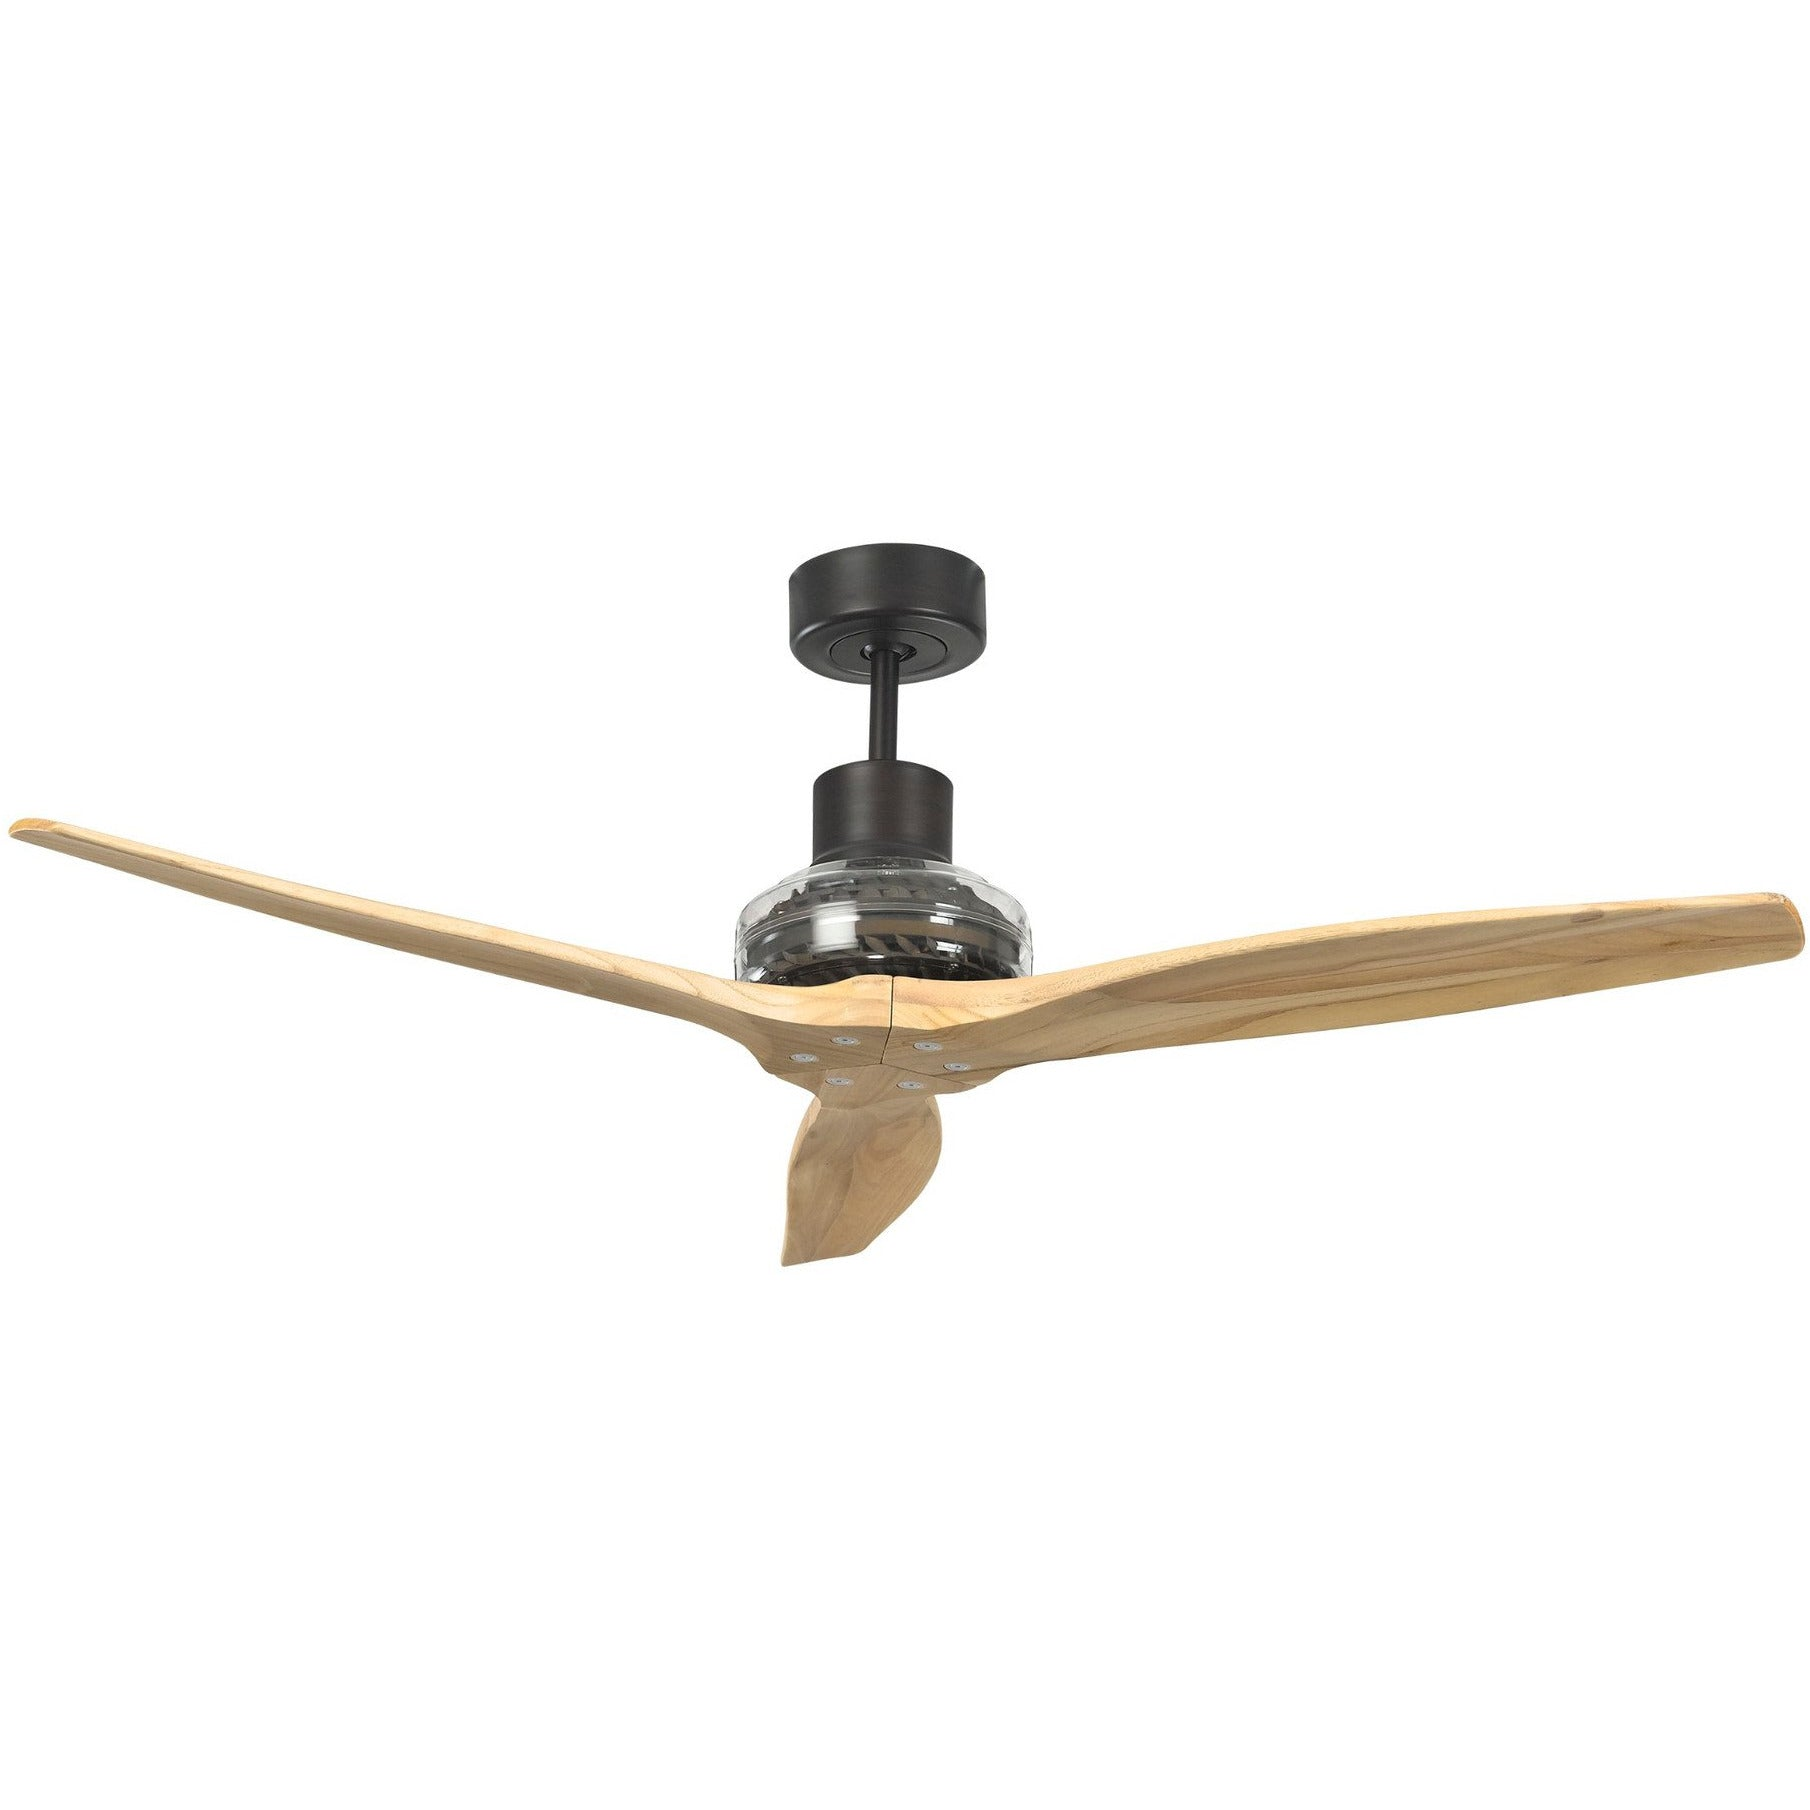 beautiful ceiling fans. Star Propeller, Fans, Ceiling Outdoor Fan, Modern Beautiful Fans R